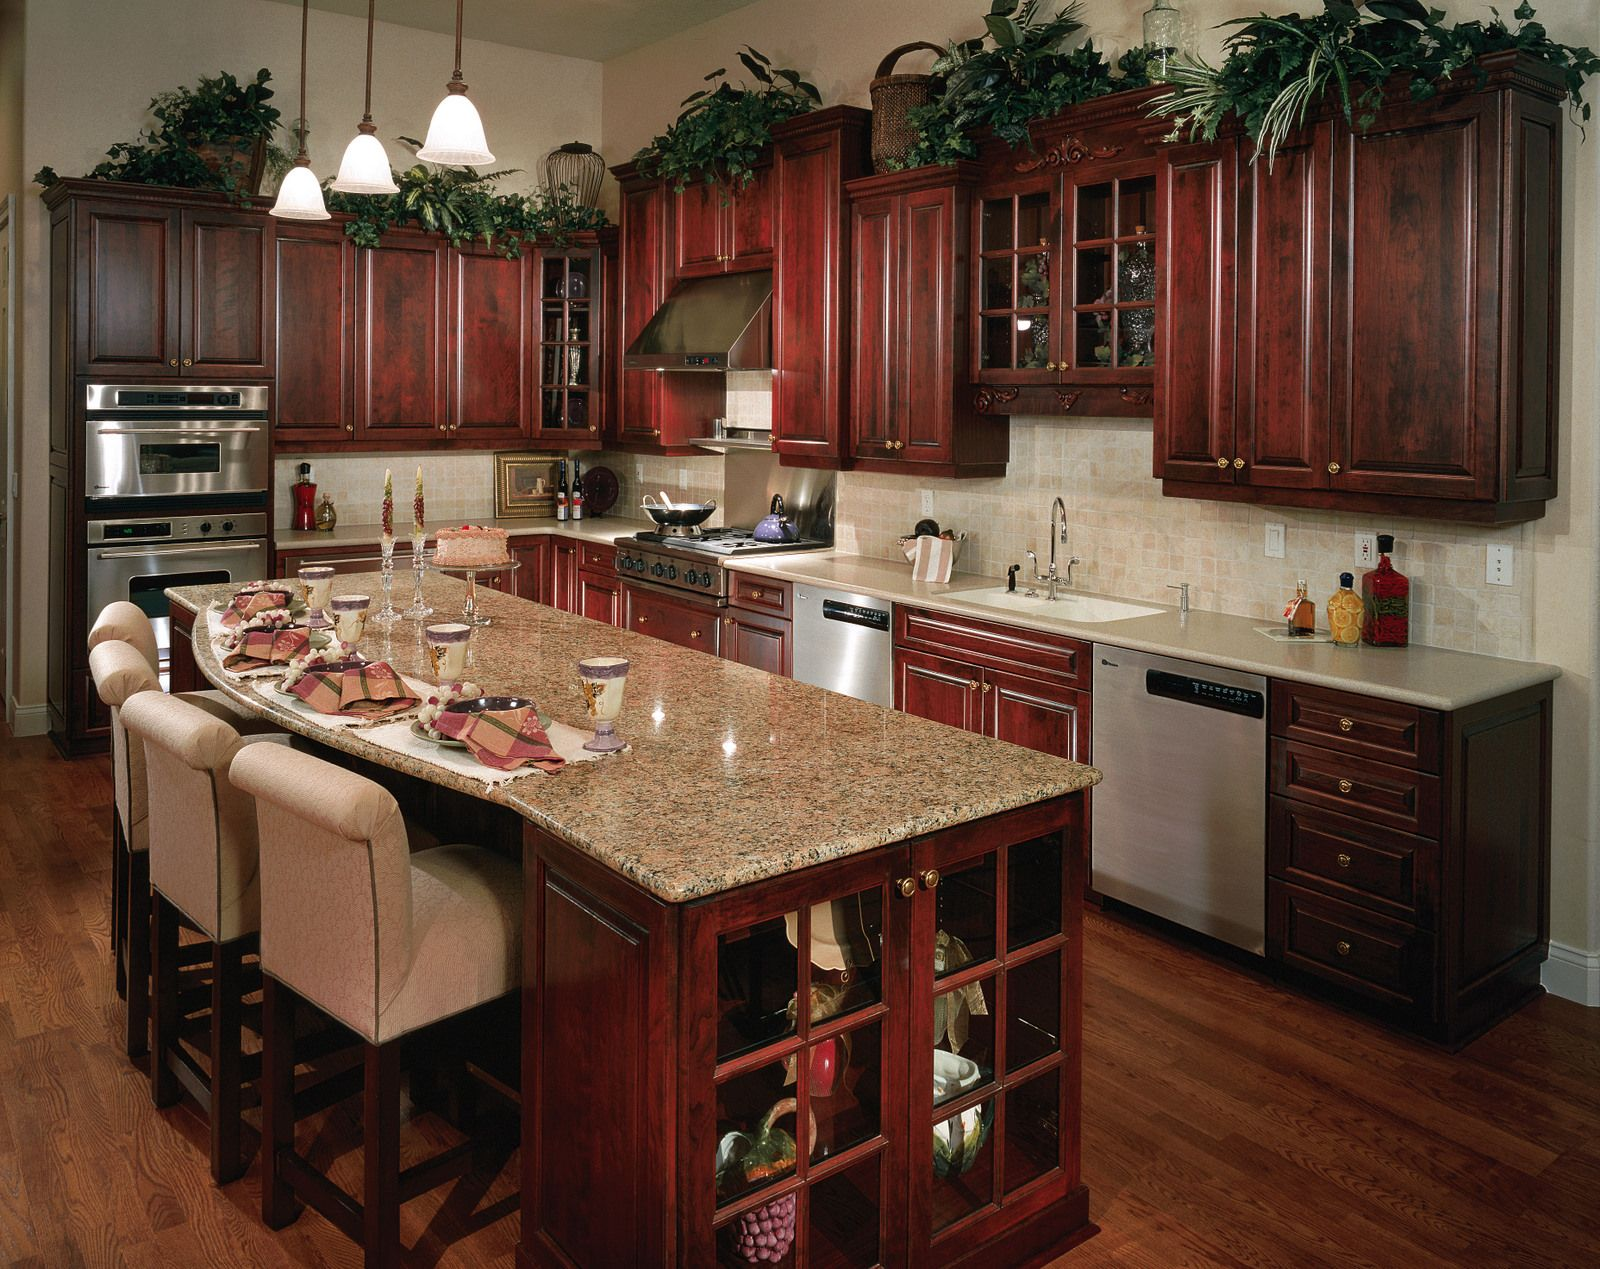 Kitchen Color Schemes With Wood Cabinets Dark Floor And Dark Cabinets But  With A Hint Of Red.